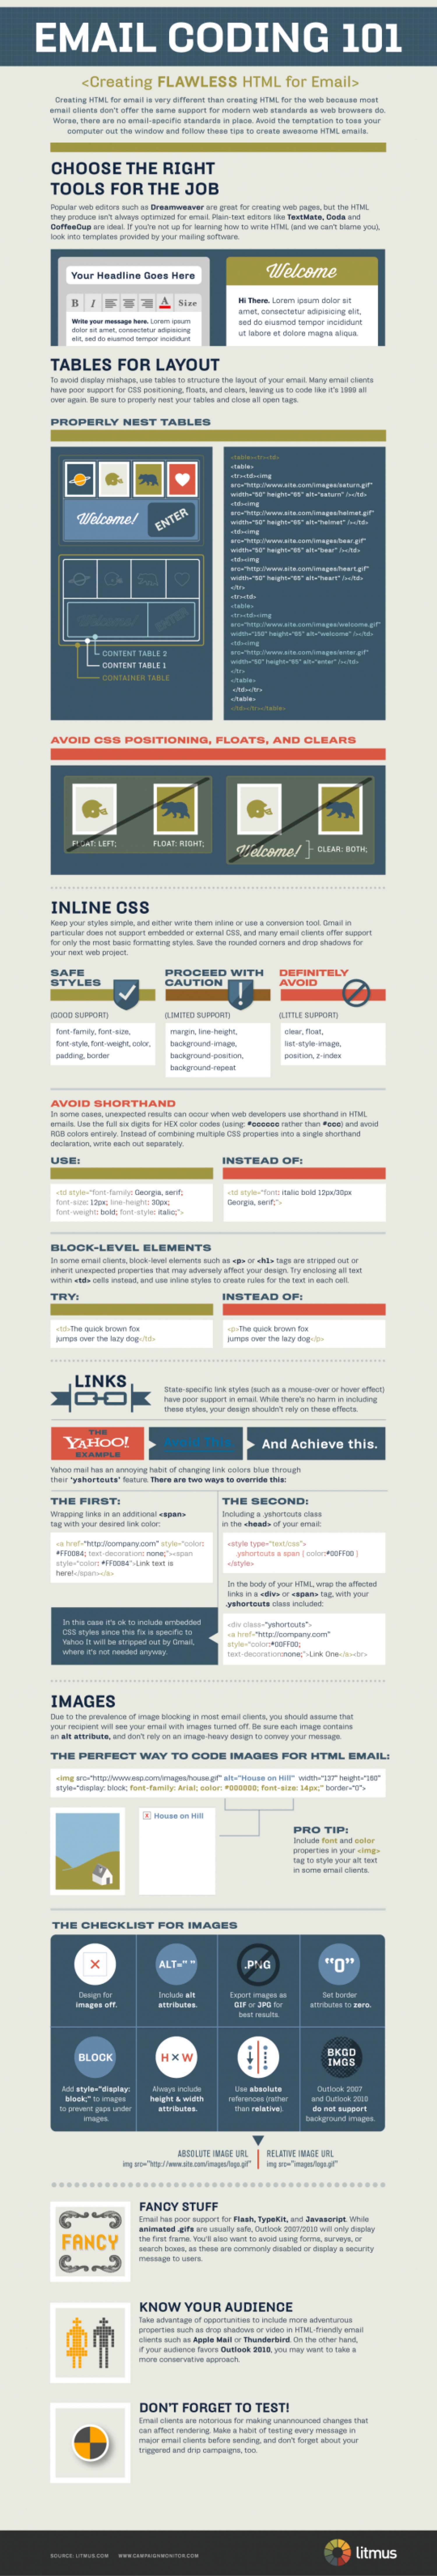 The Foundations of Coding HTML Email Infographic